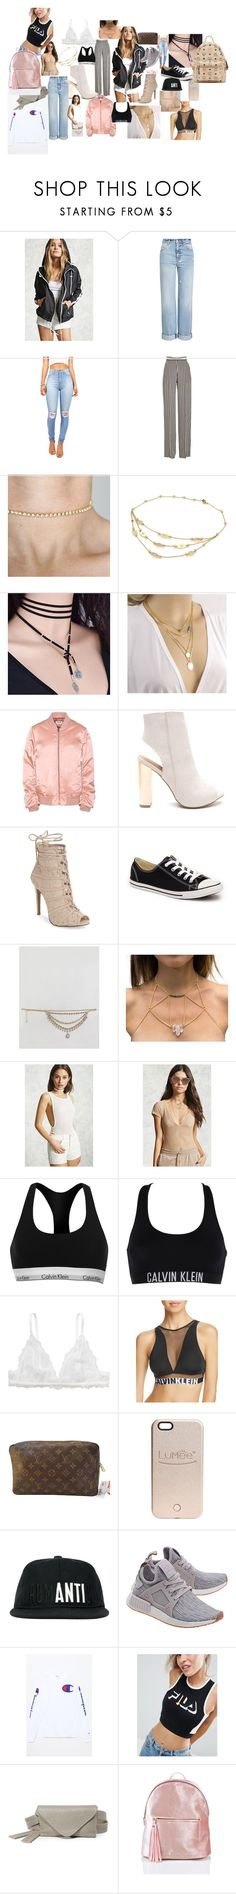 """""""SS 17 WISH LIST"""" by nikkime on Polyvore featuring Forever 21, Alexander McQueen, Vibrant, Etro, Bulgari, Glamiz, Acne Studios, Chinese Laundry, Converse and Love Rocks"""